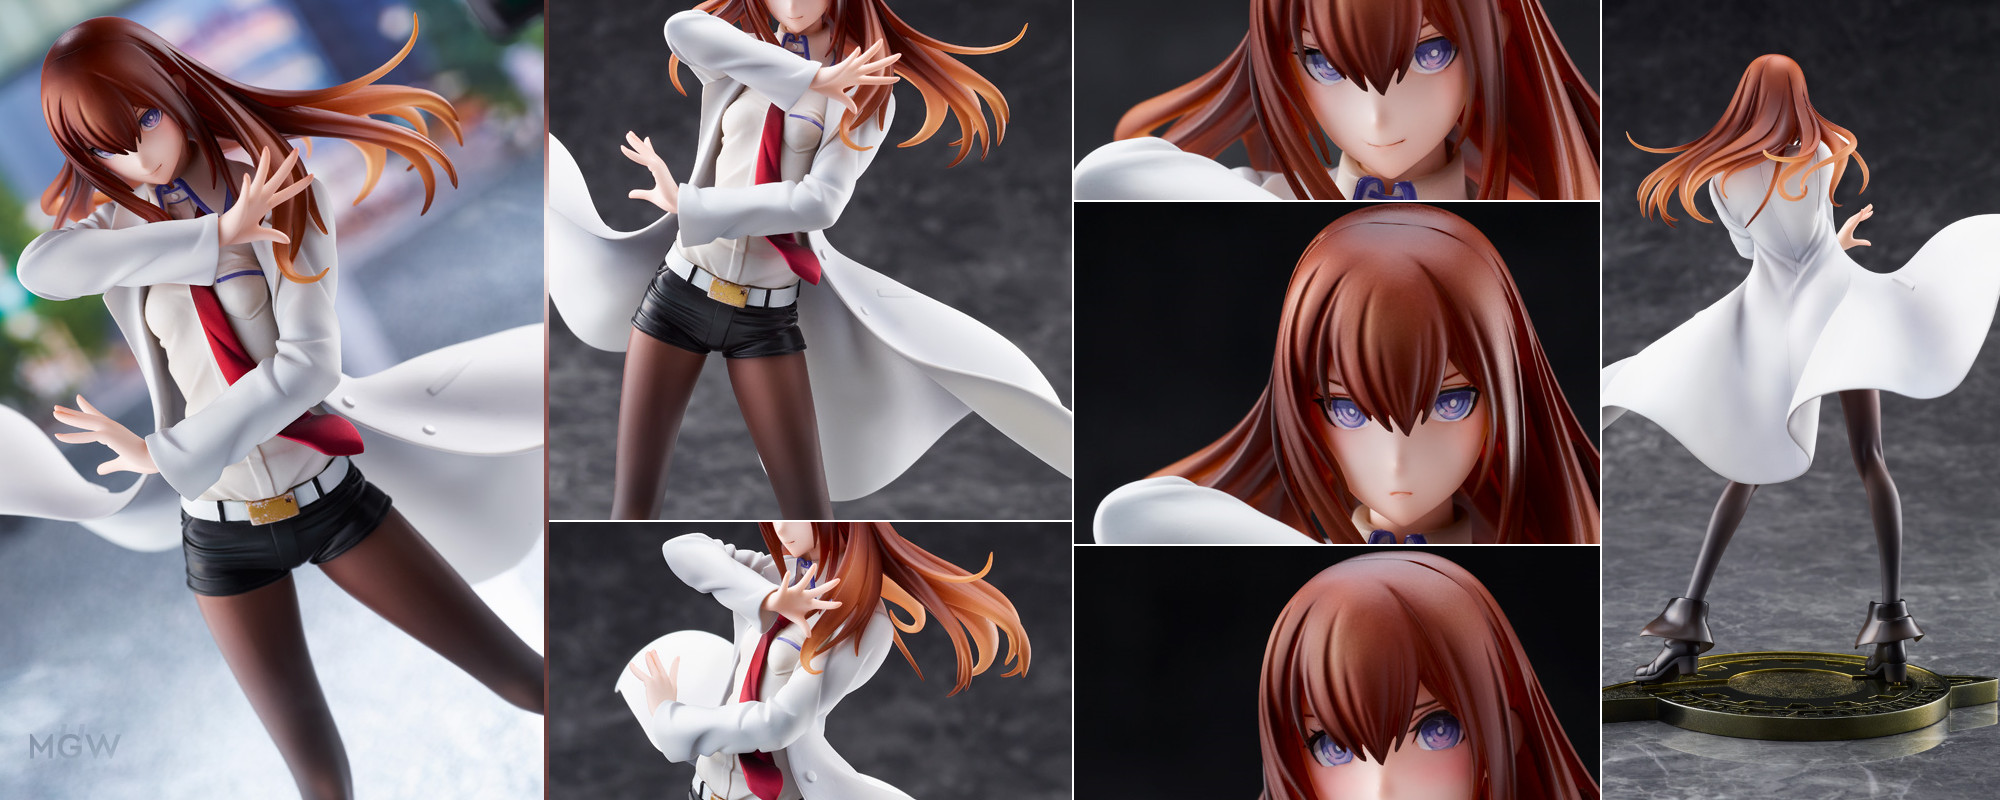 DreamTech Makise Kurisu White Coat style by WAVE from STEINSGATE